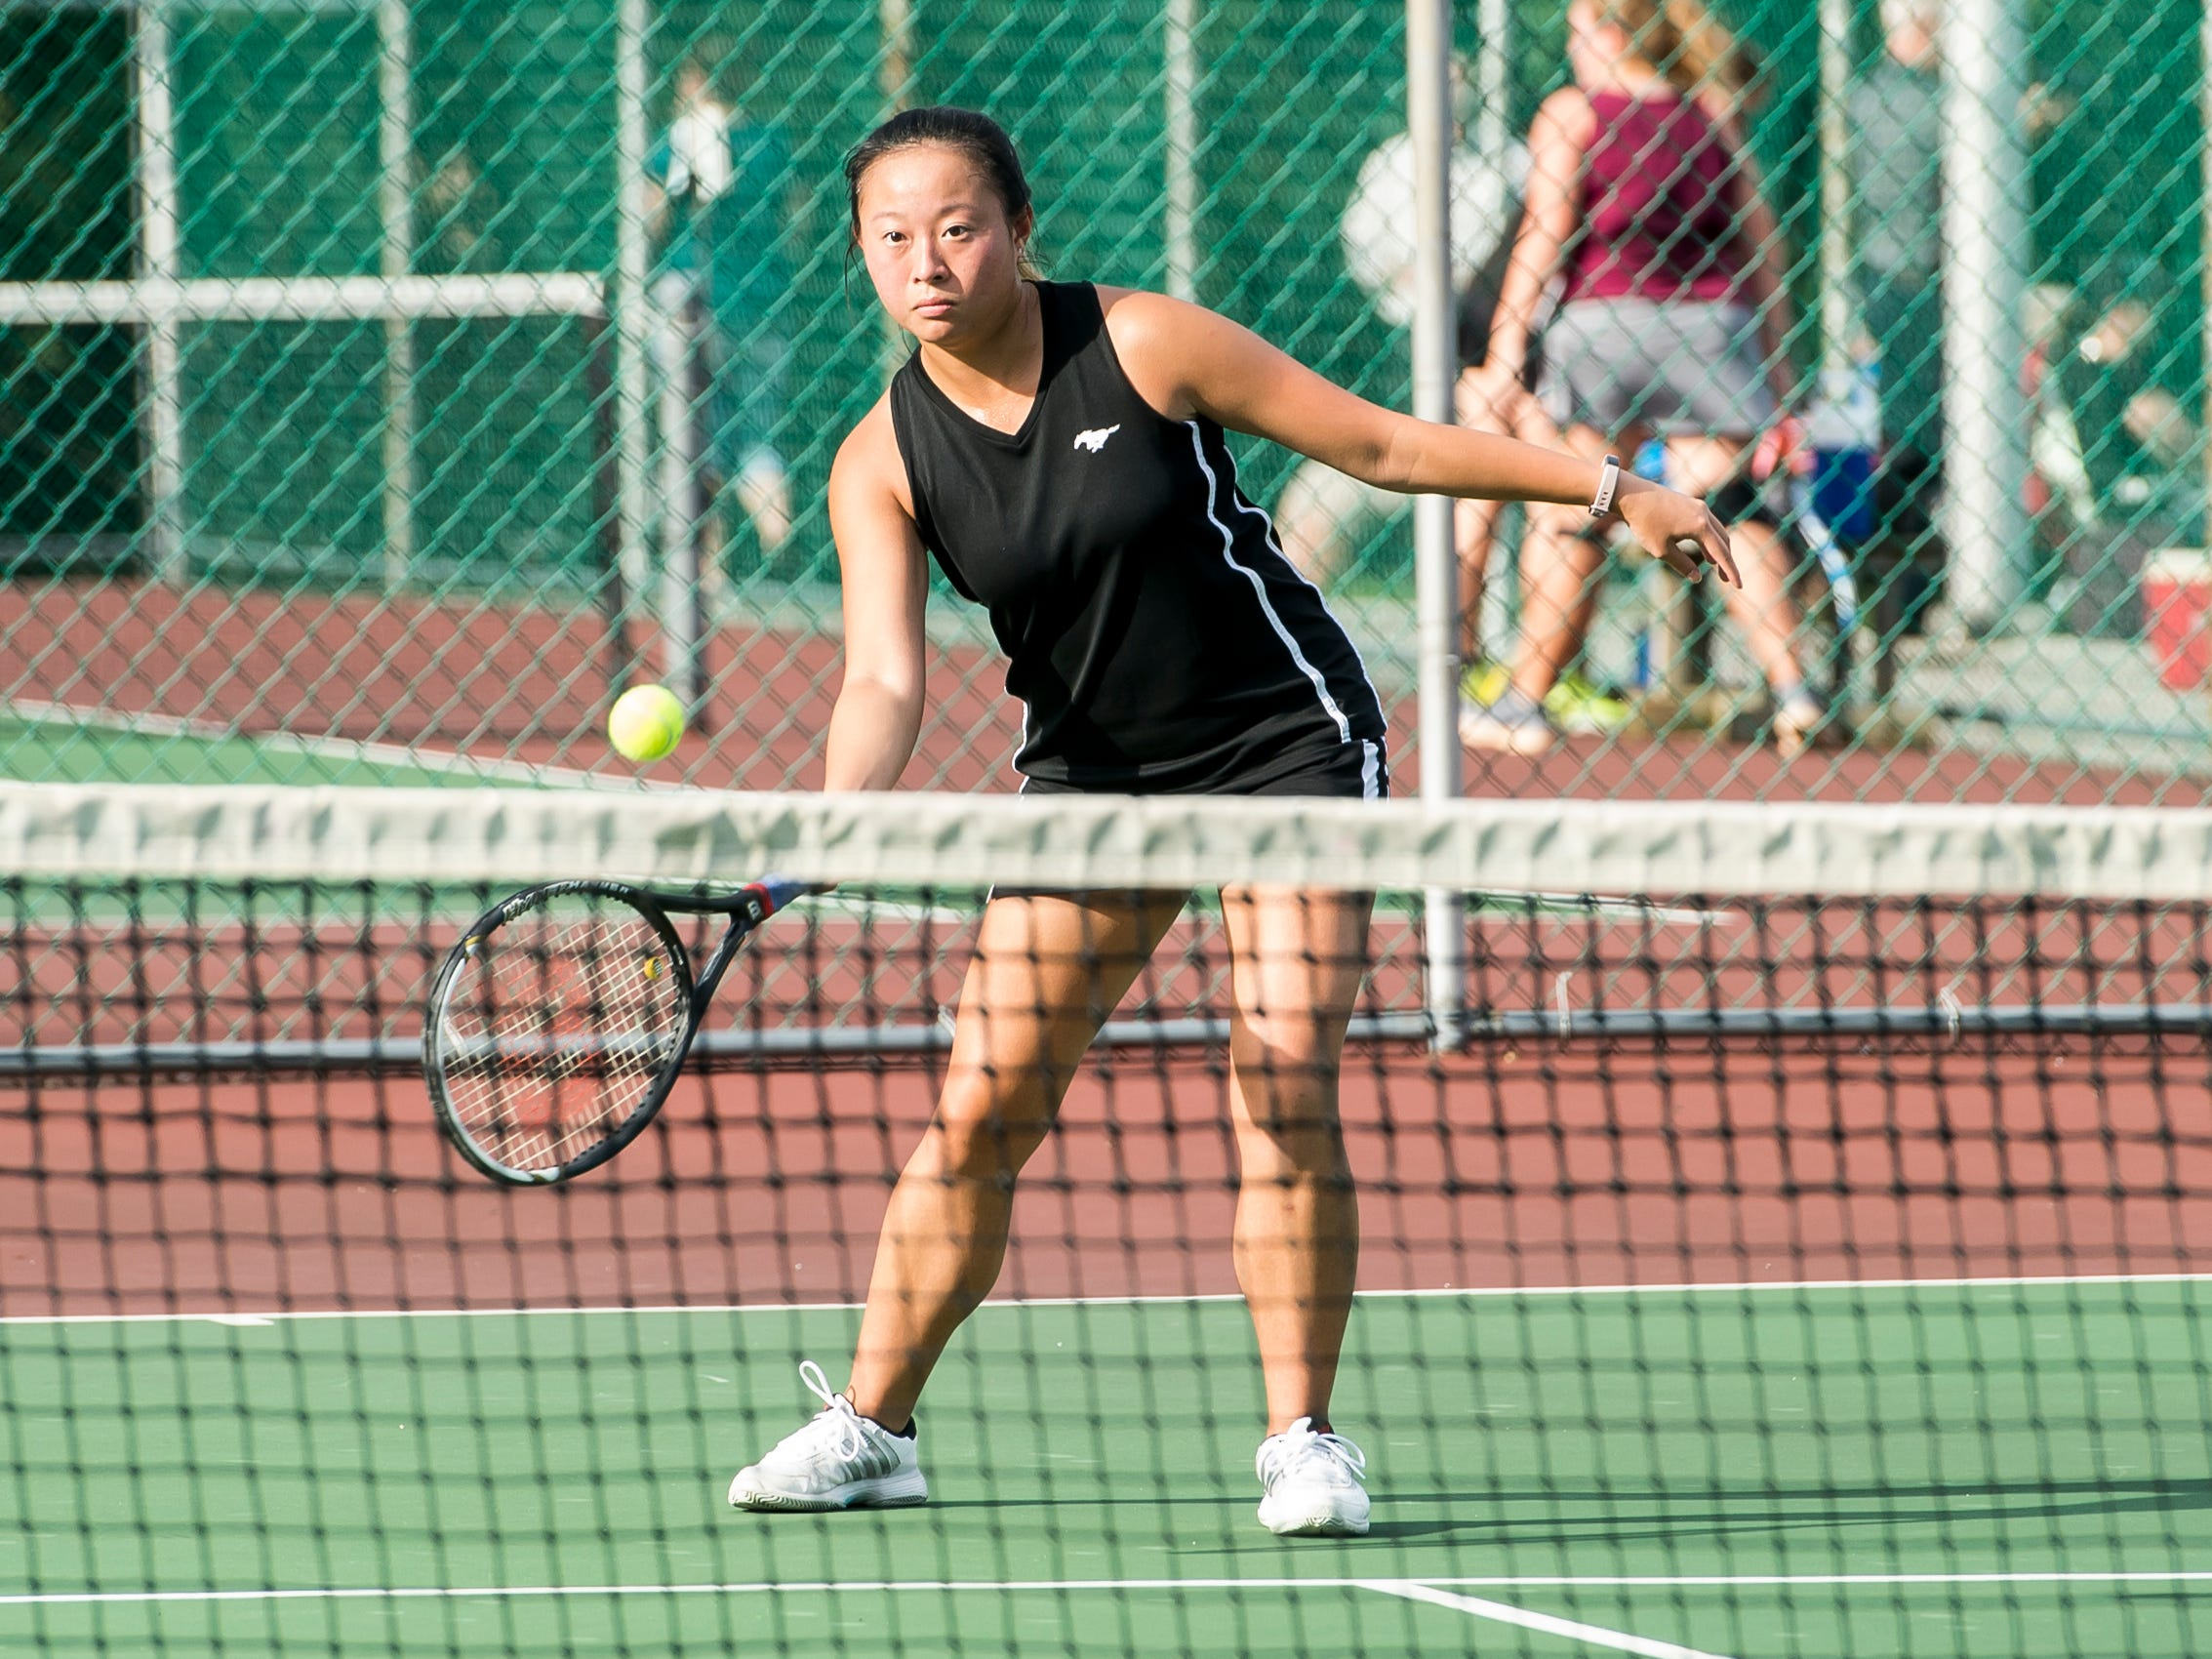 South Western's Karen Yang returns the ball to New Oxford's Maddie Markle while playing in the No. 3 singles match on Wednesday, September 26, 2018. Yang won 7-5, 5-7, 10-6.